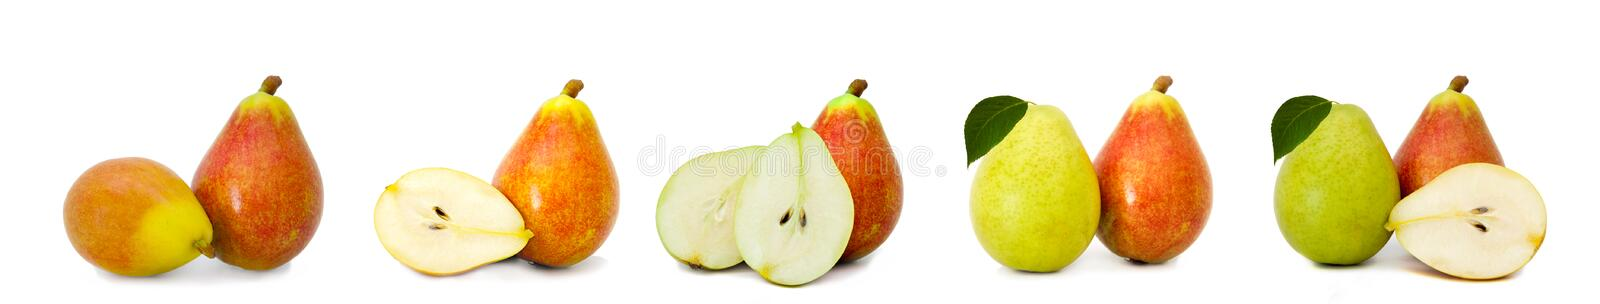 natural pears isolated stock photo